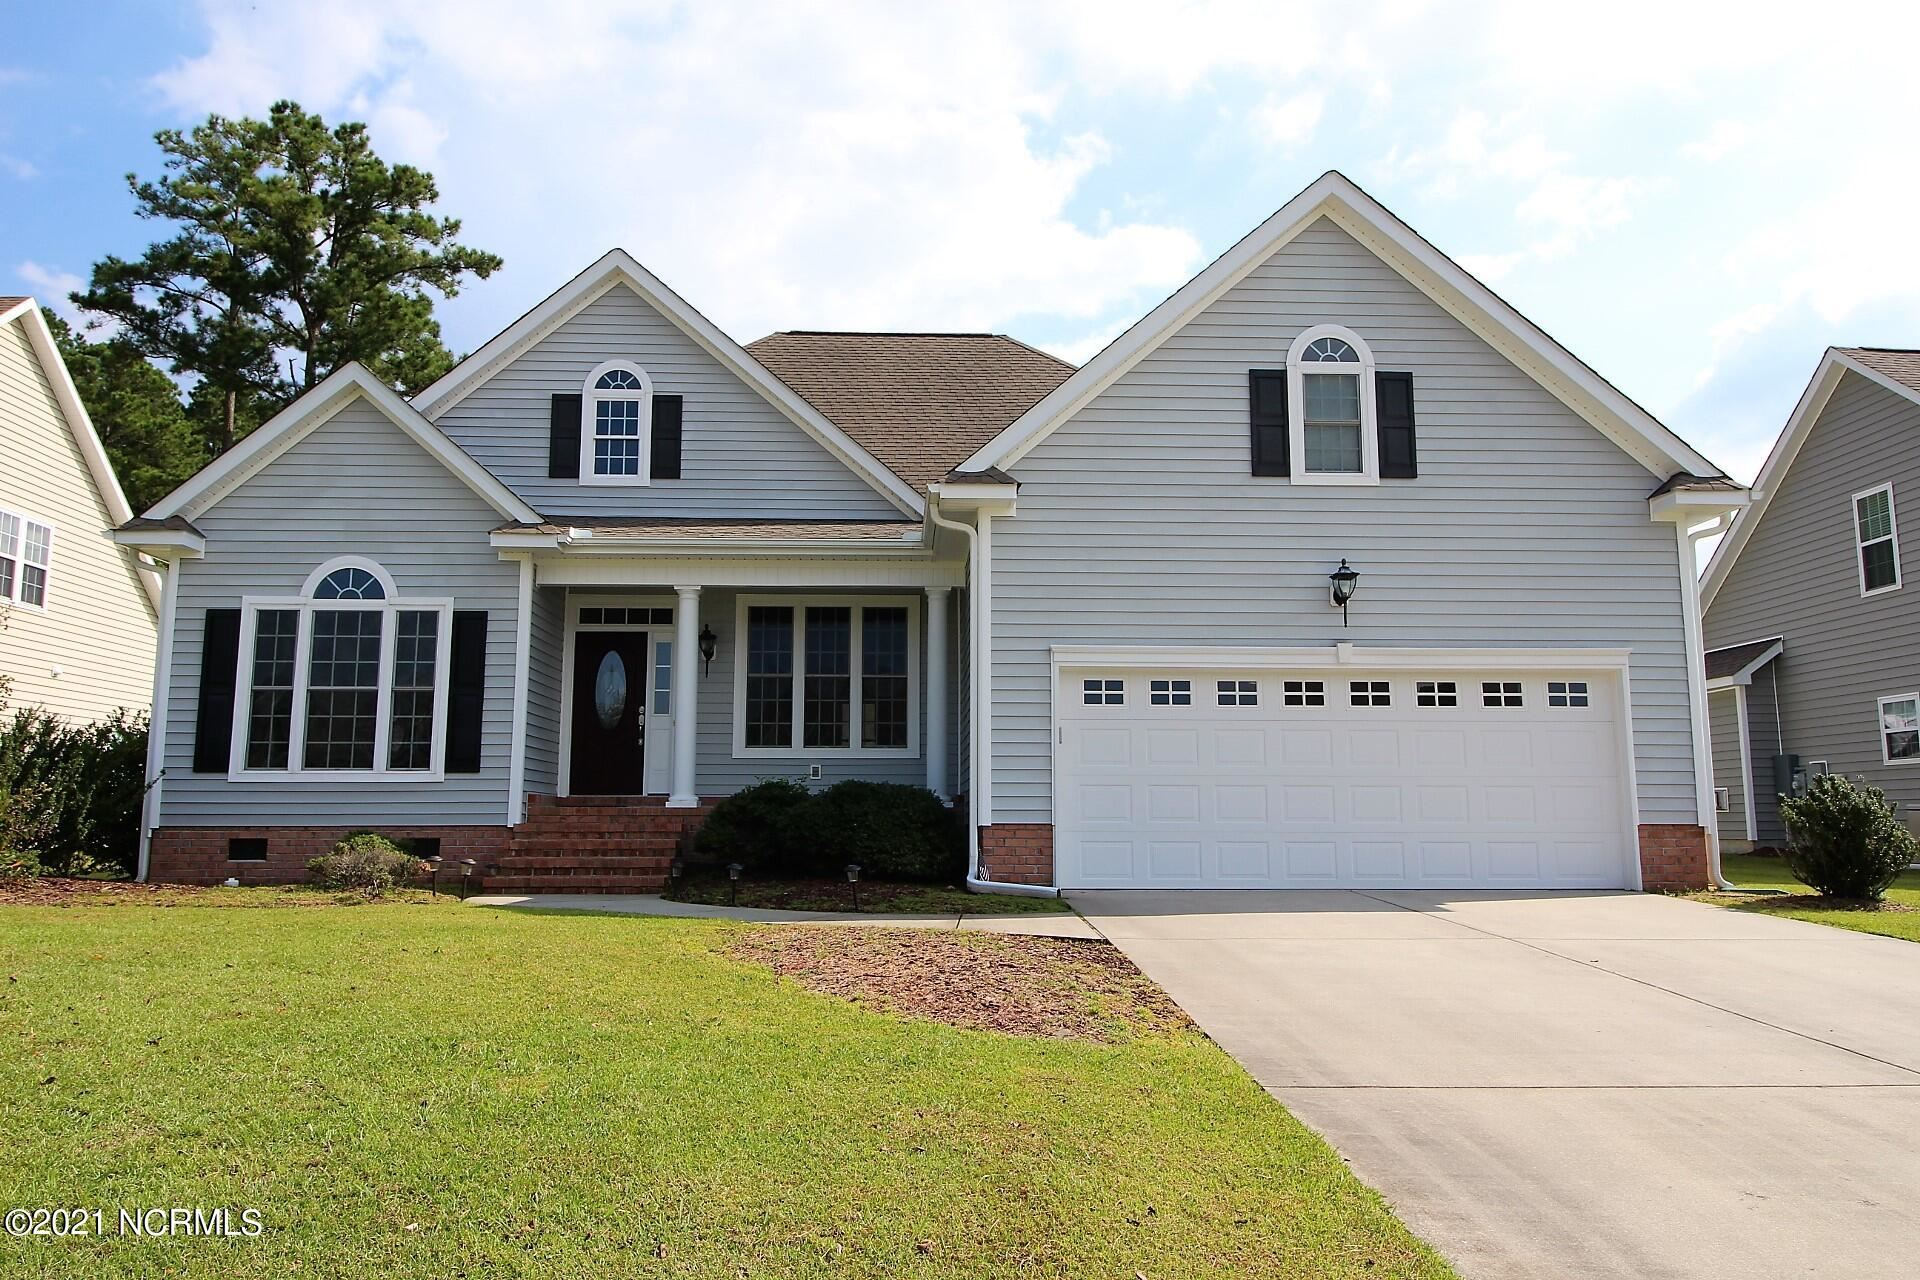 Photo of 5303 Bayberry Park Drive, New Bern, NC 28562 (MLS # 100292886)